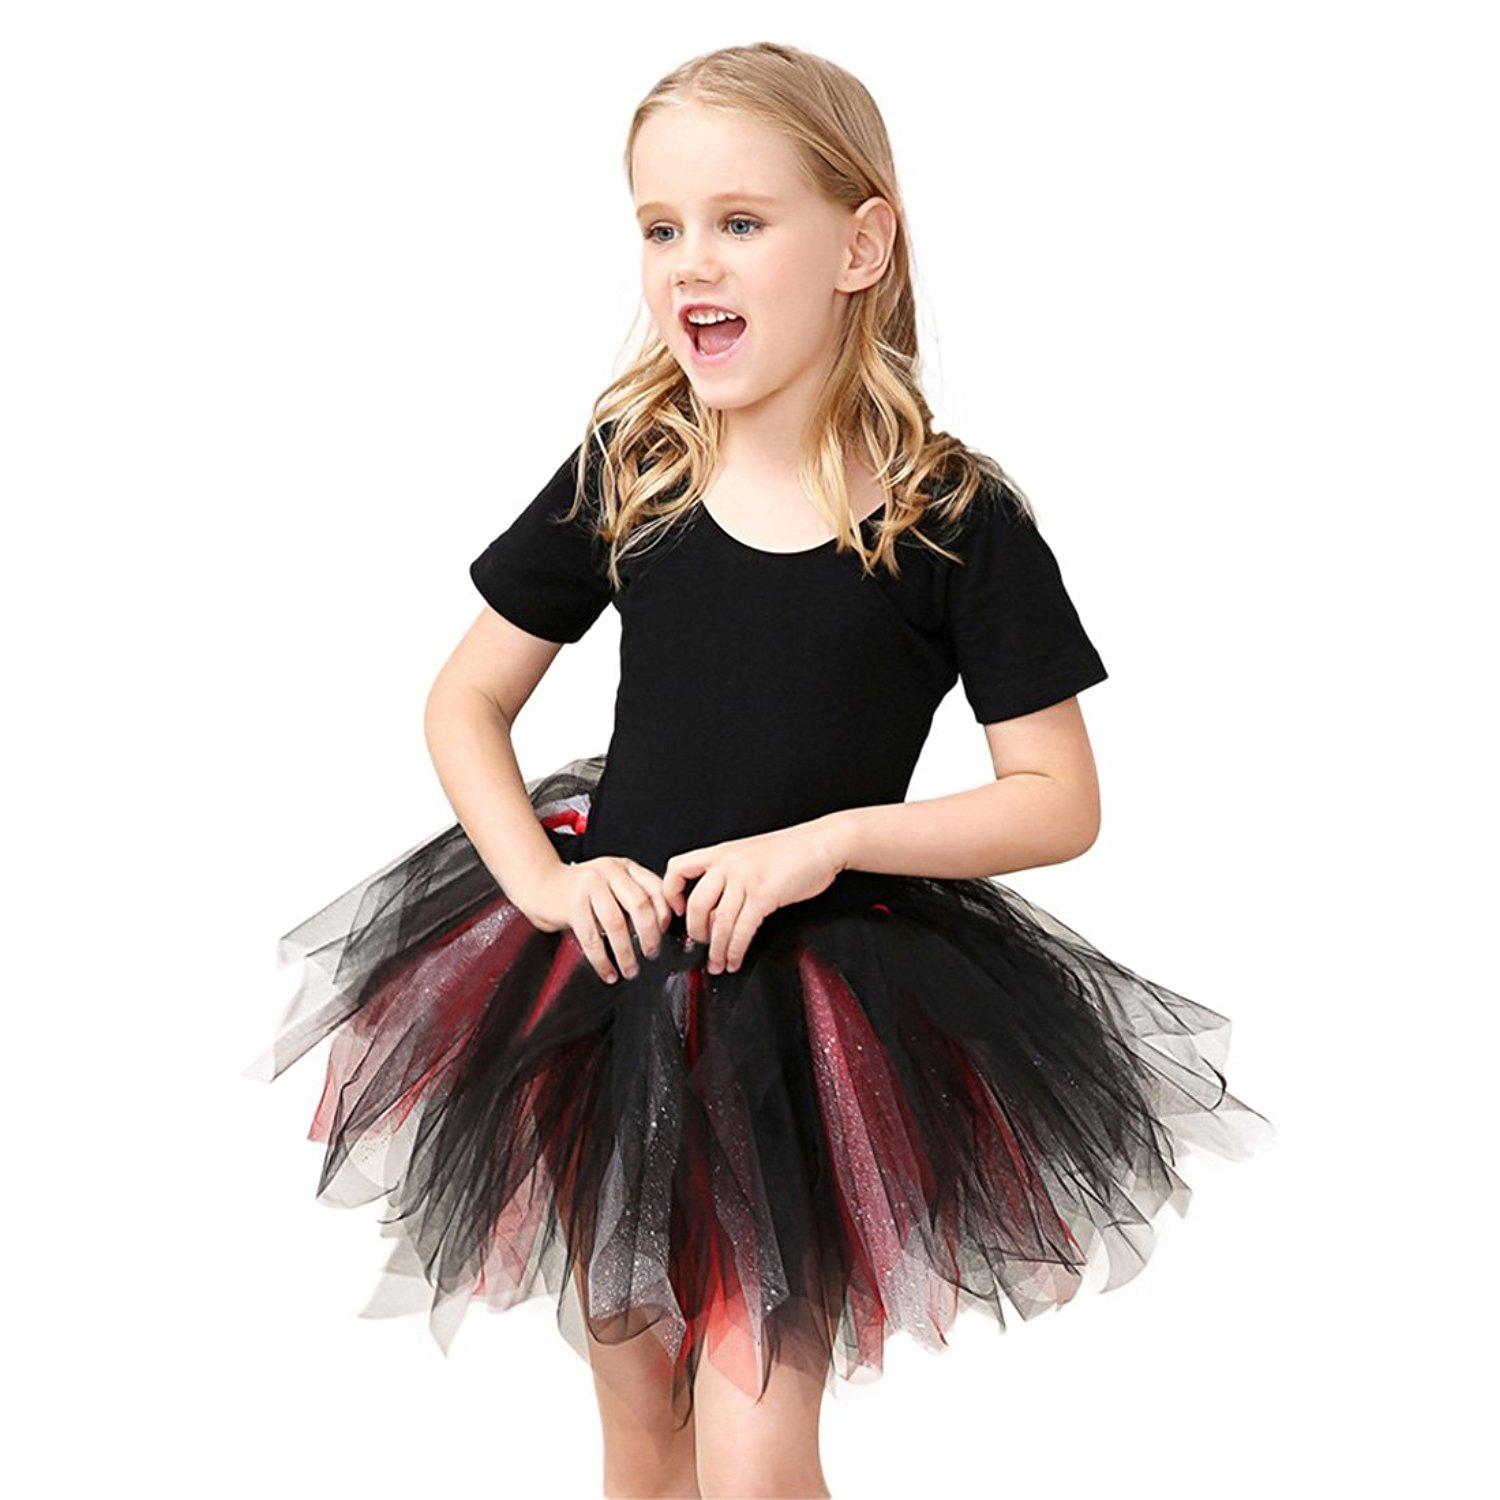 b16e7772a Get Quotations · YIBLBOX Little Girls Short Sleeve Tiered Ruffle Tulle Mesh  Tutu Ballet Dance Party Princess Dresses Skirted